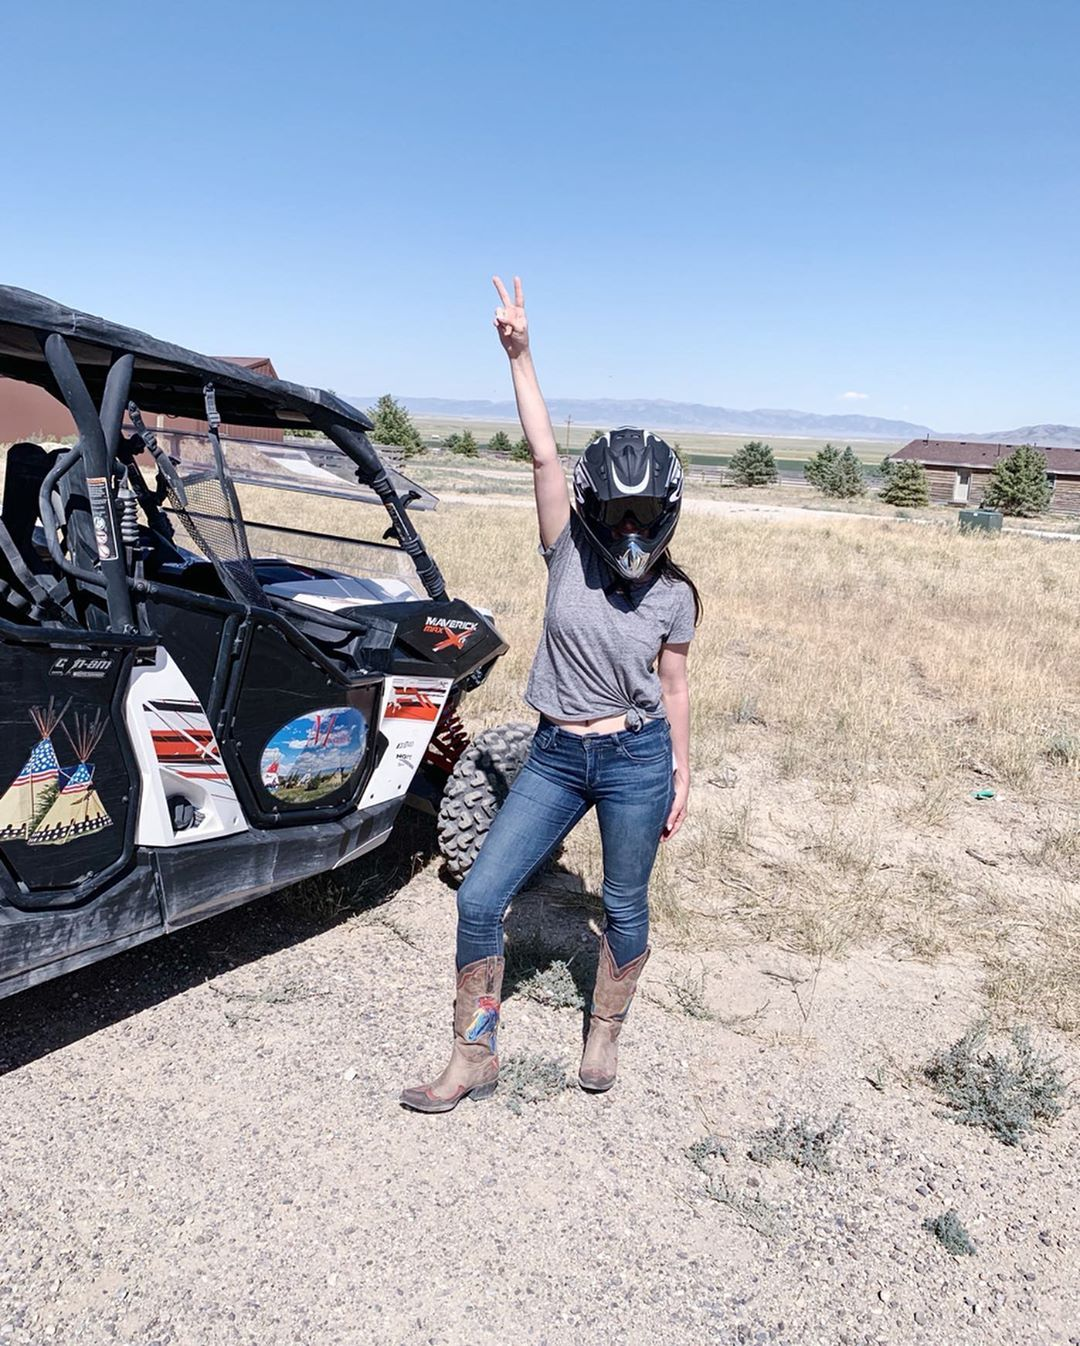 Taking on this work week after 3 different time zones and a long Labor Day weekend.... we got this! Swipe right for the...   Taking on this work week after 3 different time zones and a long Labor Day weekend.... we got this! Swipe right for the aftermath of a 2 hour ATV in the Nevada dessert @mustangmonument @tzelltravel #tzelltravels  @mysteriousconcepts #labordaydesserts